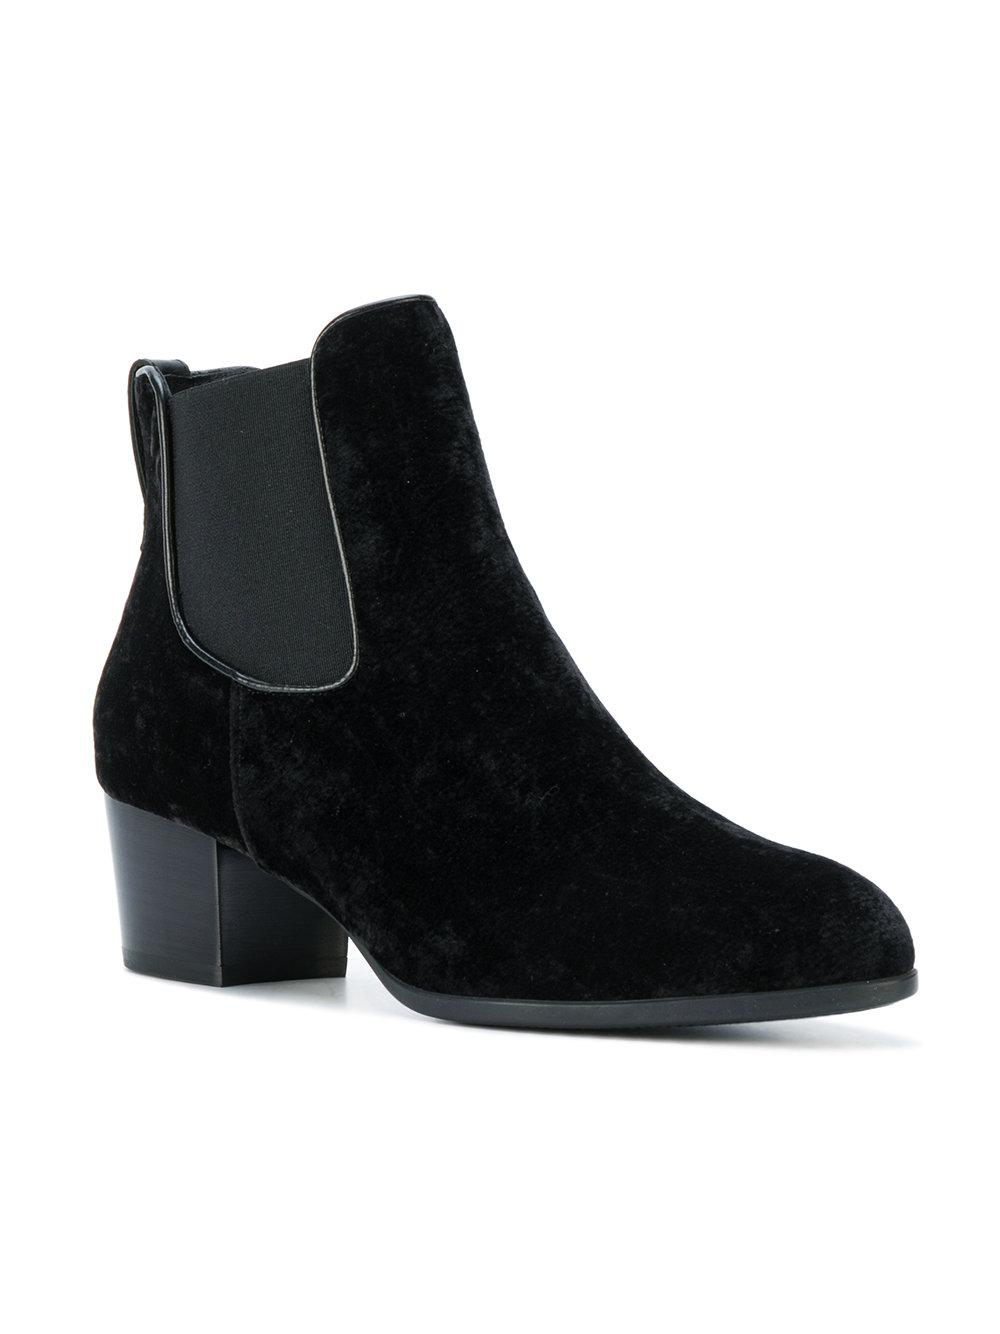 Store Hogan Chelsea Ankle Boots Buy Cheap Inexpensive New Styles PaaqSoMel